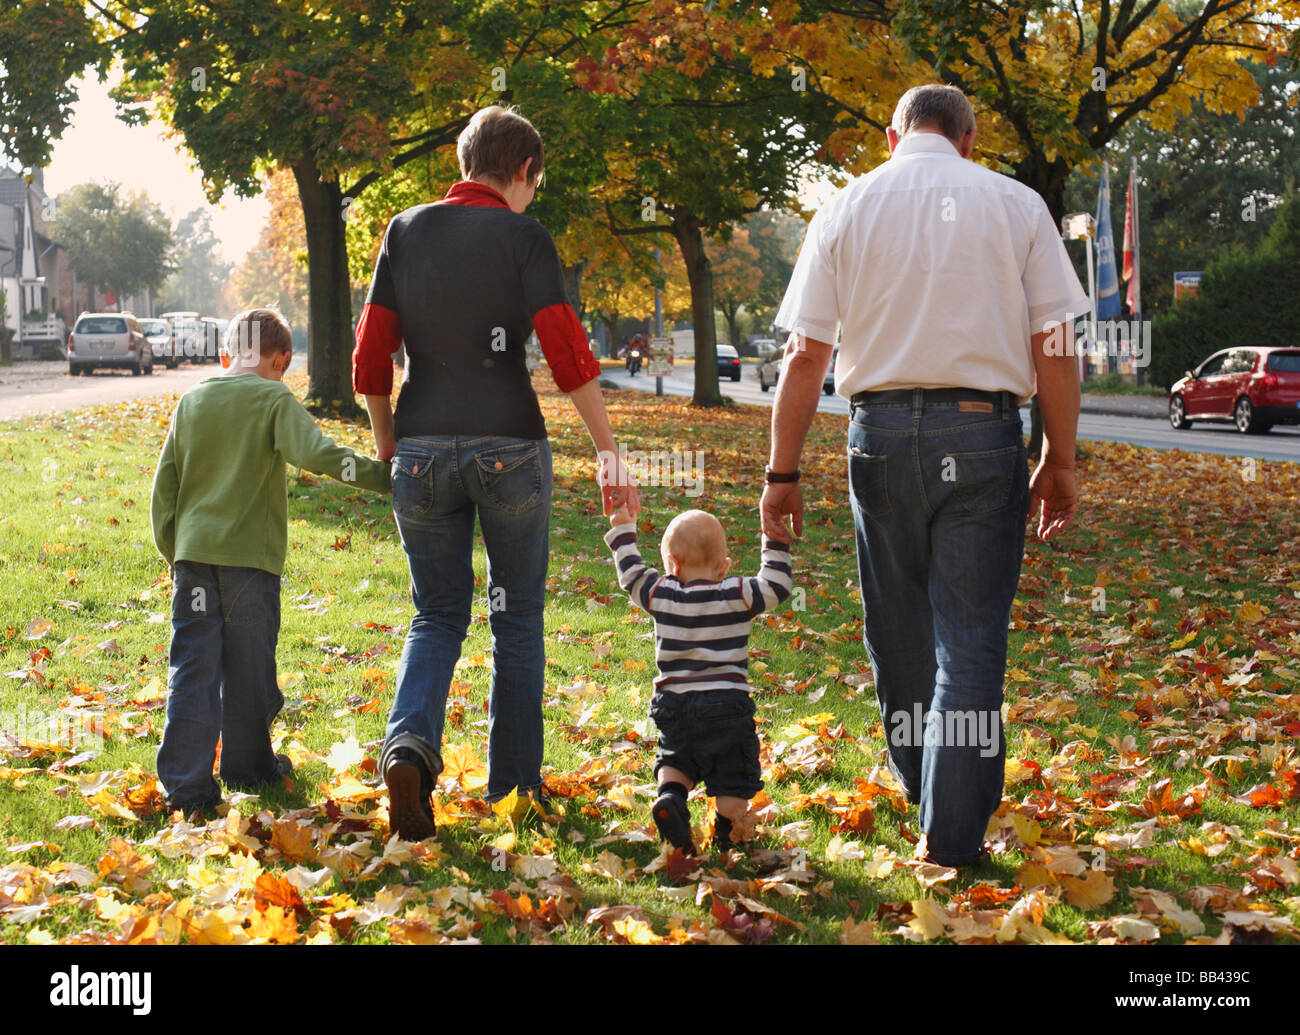 Family with two children in autumn - Stock Image